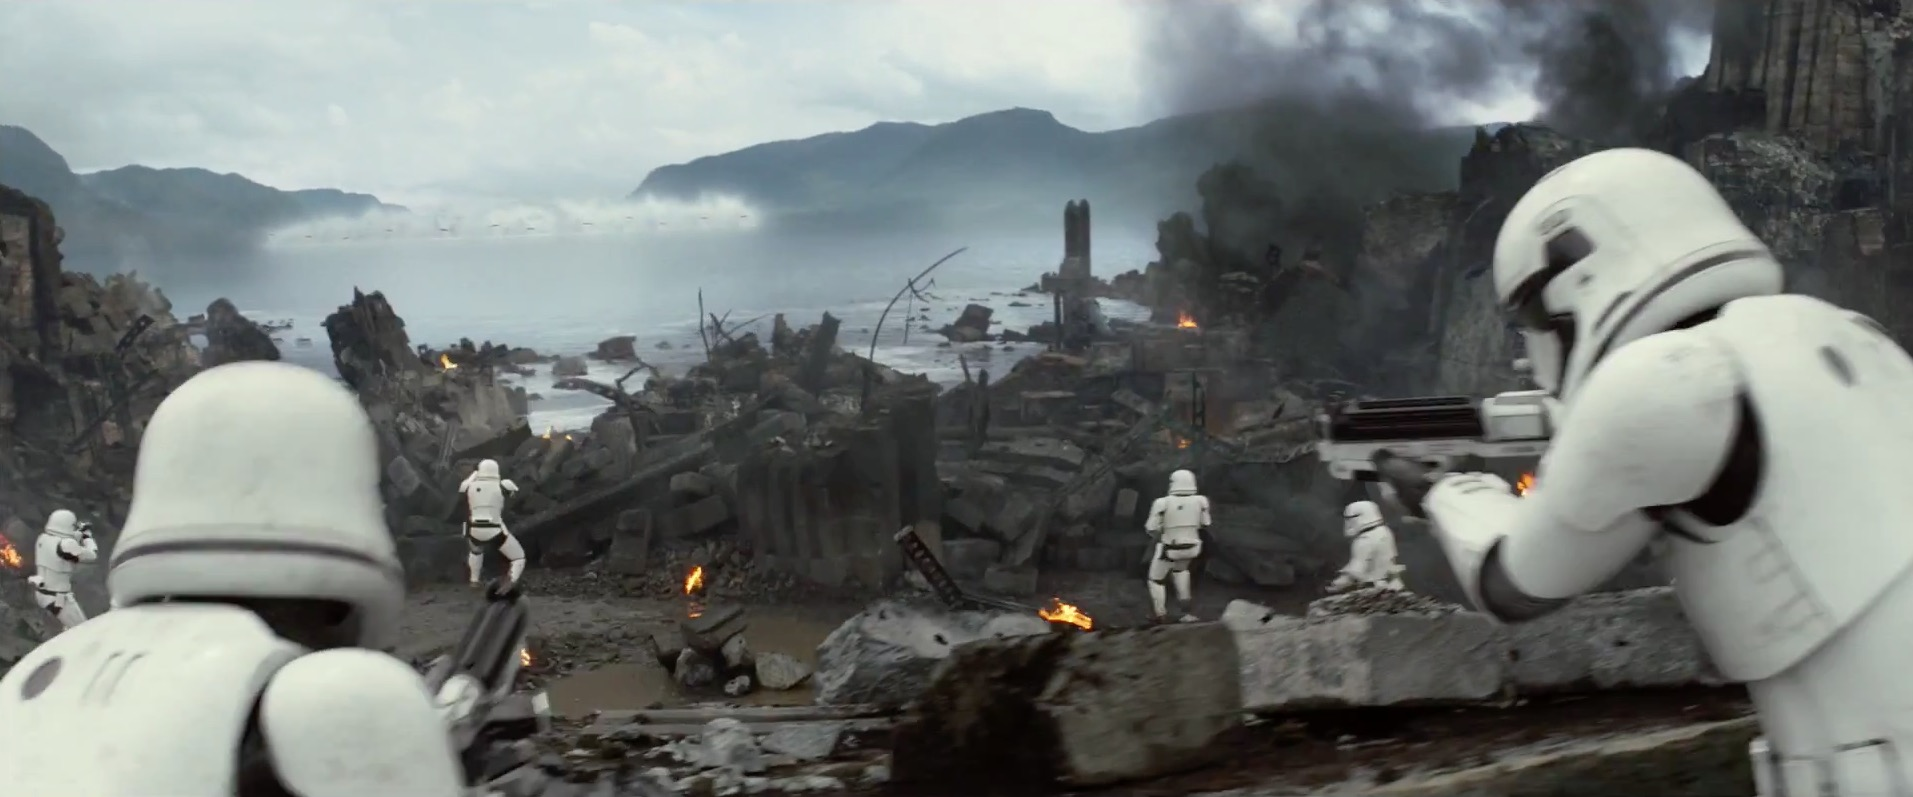 stormtroopers_and_x-wings_0.jpg